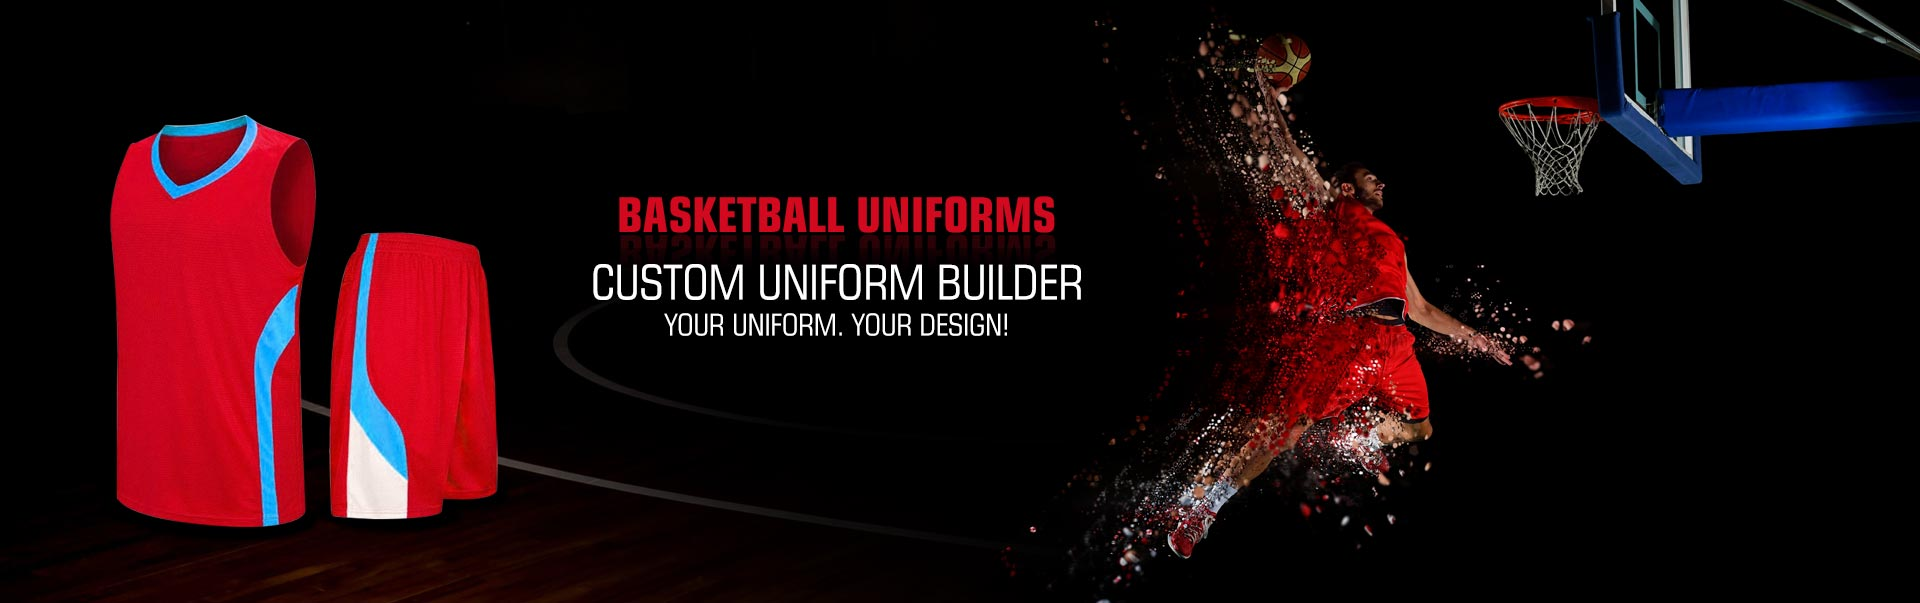 Basketball Uniforms Wholesaler, Suppliers in Aberdeen